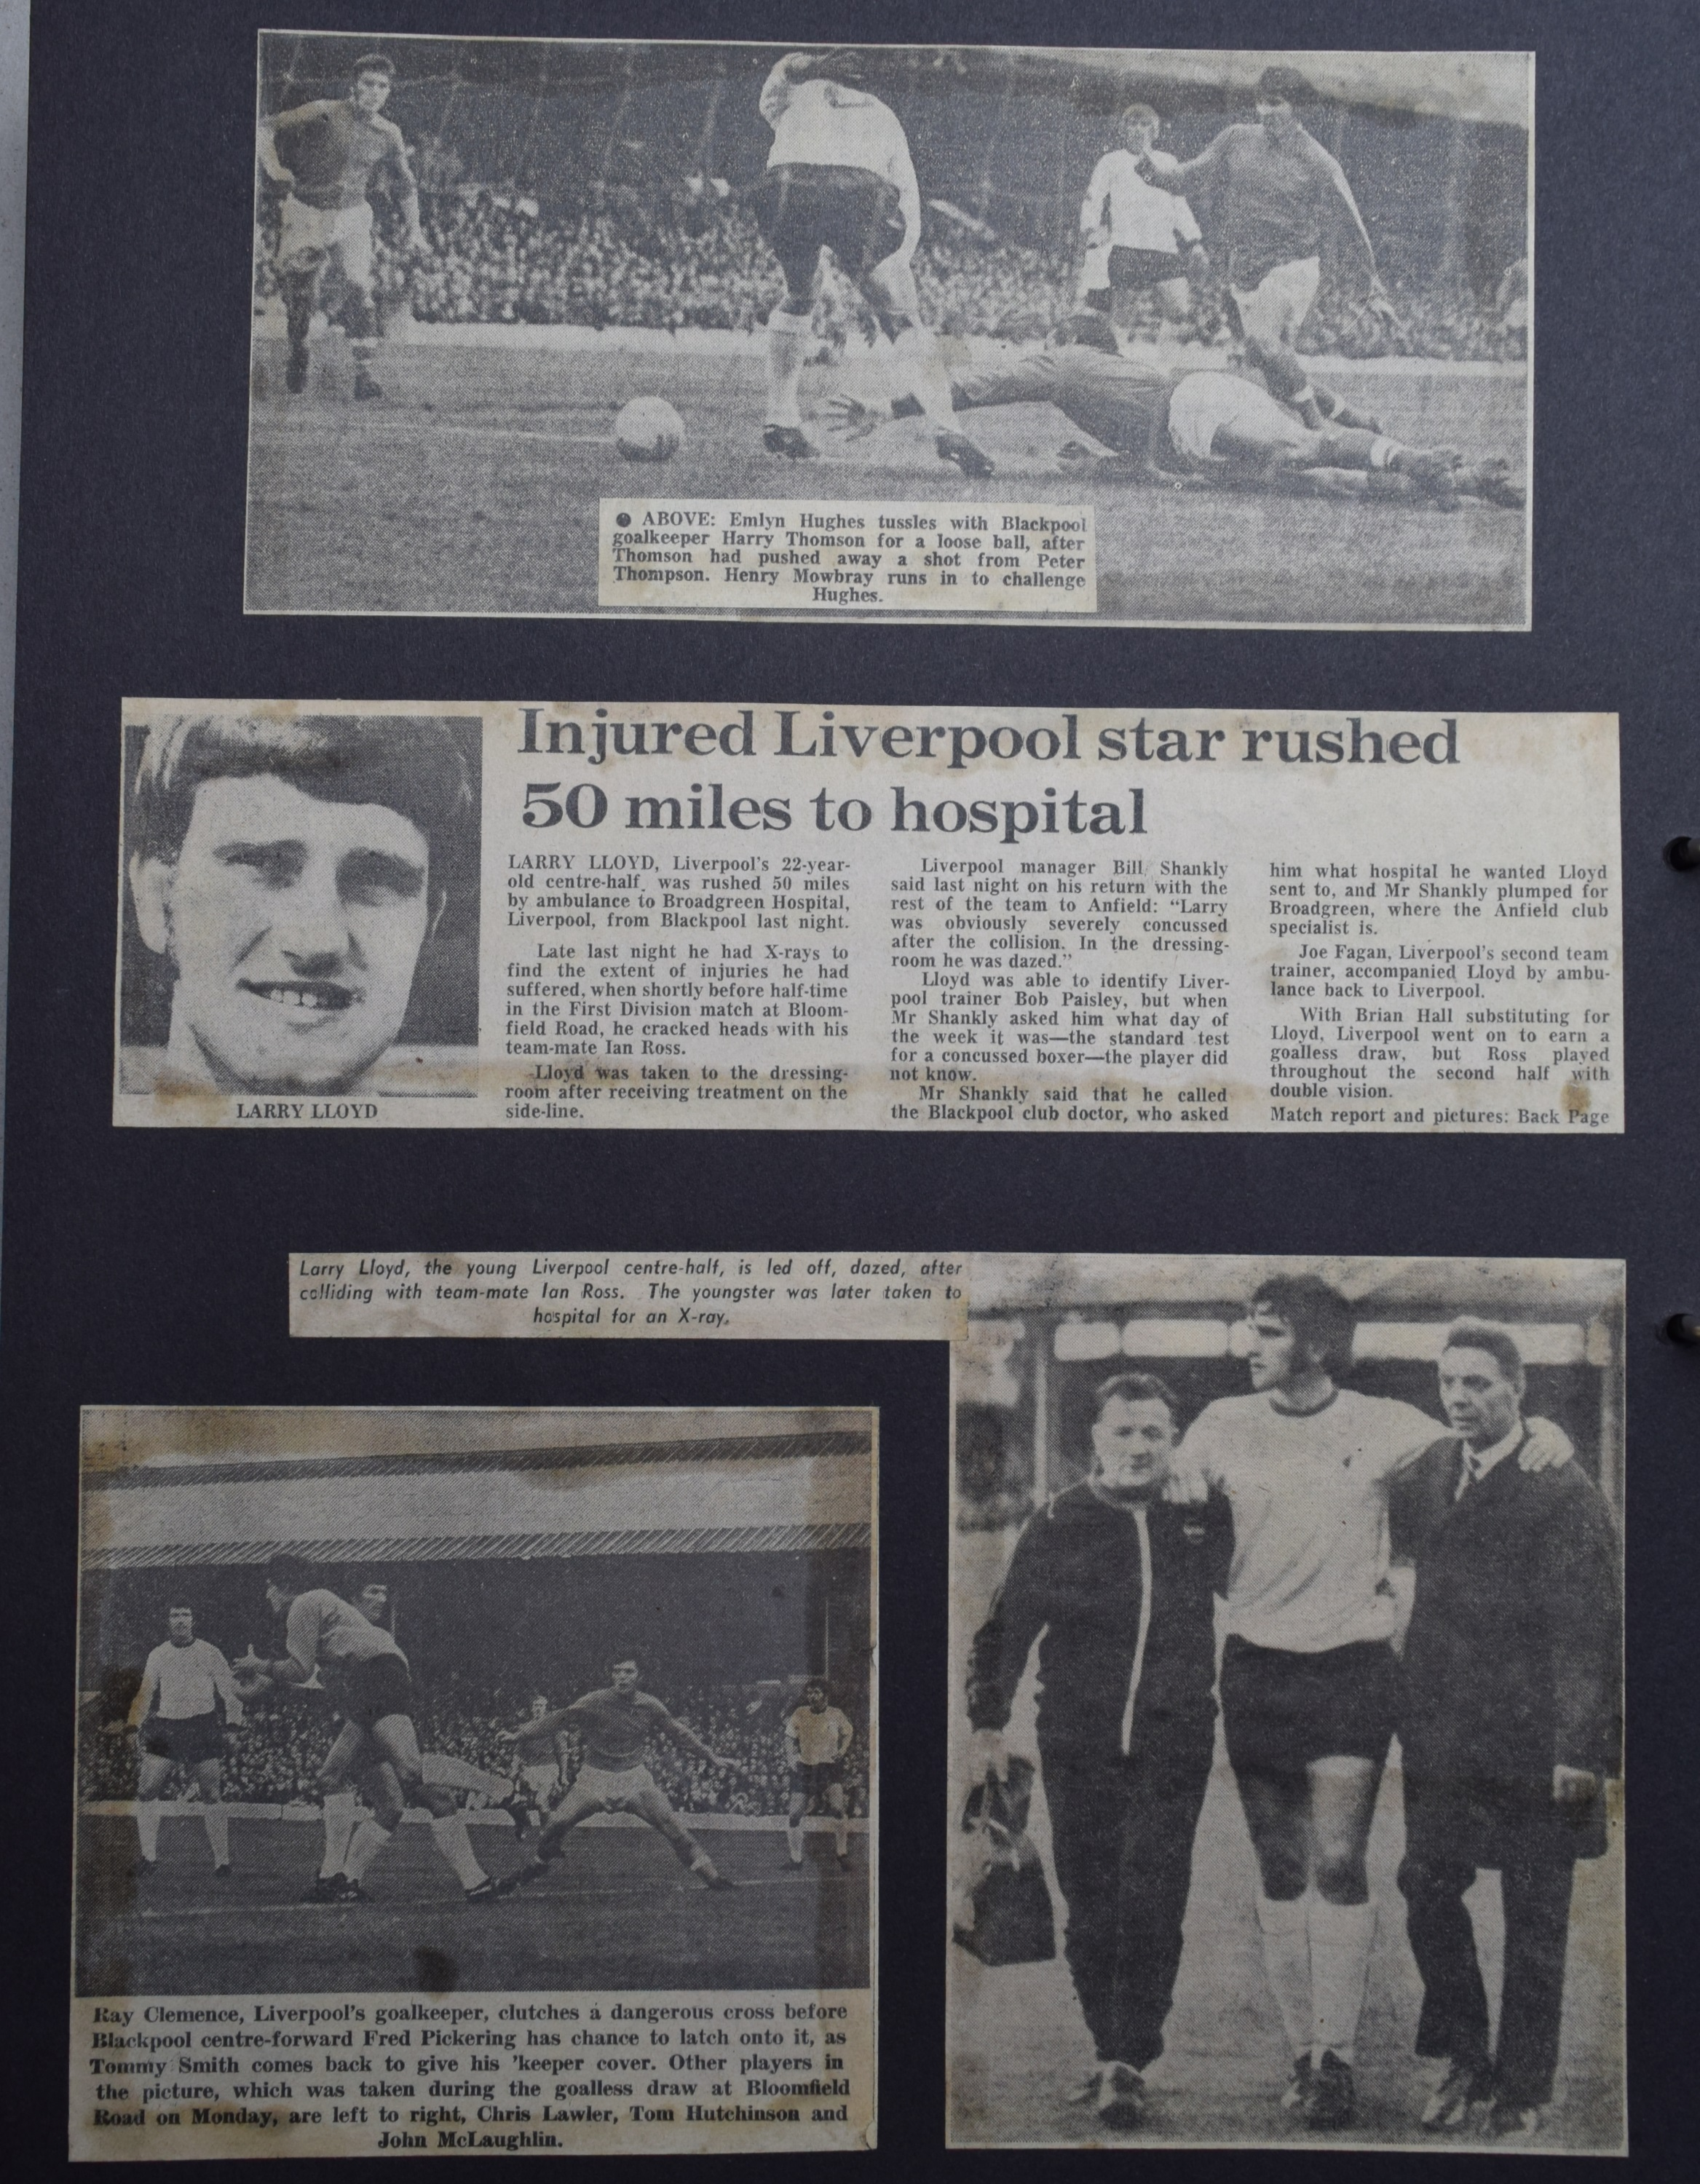 Injured Liverpool star rushed 50 miles to hospital - 17 August 1970